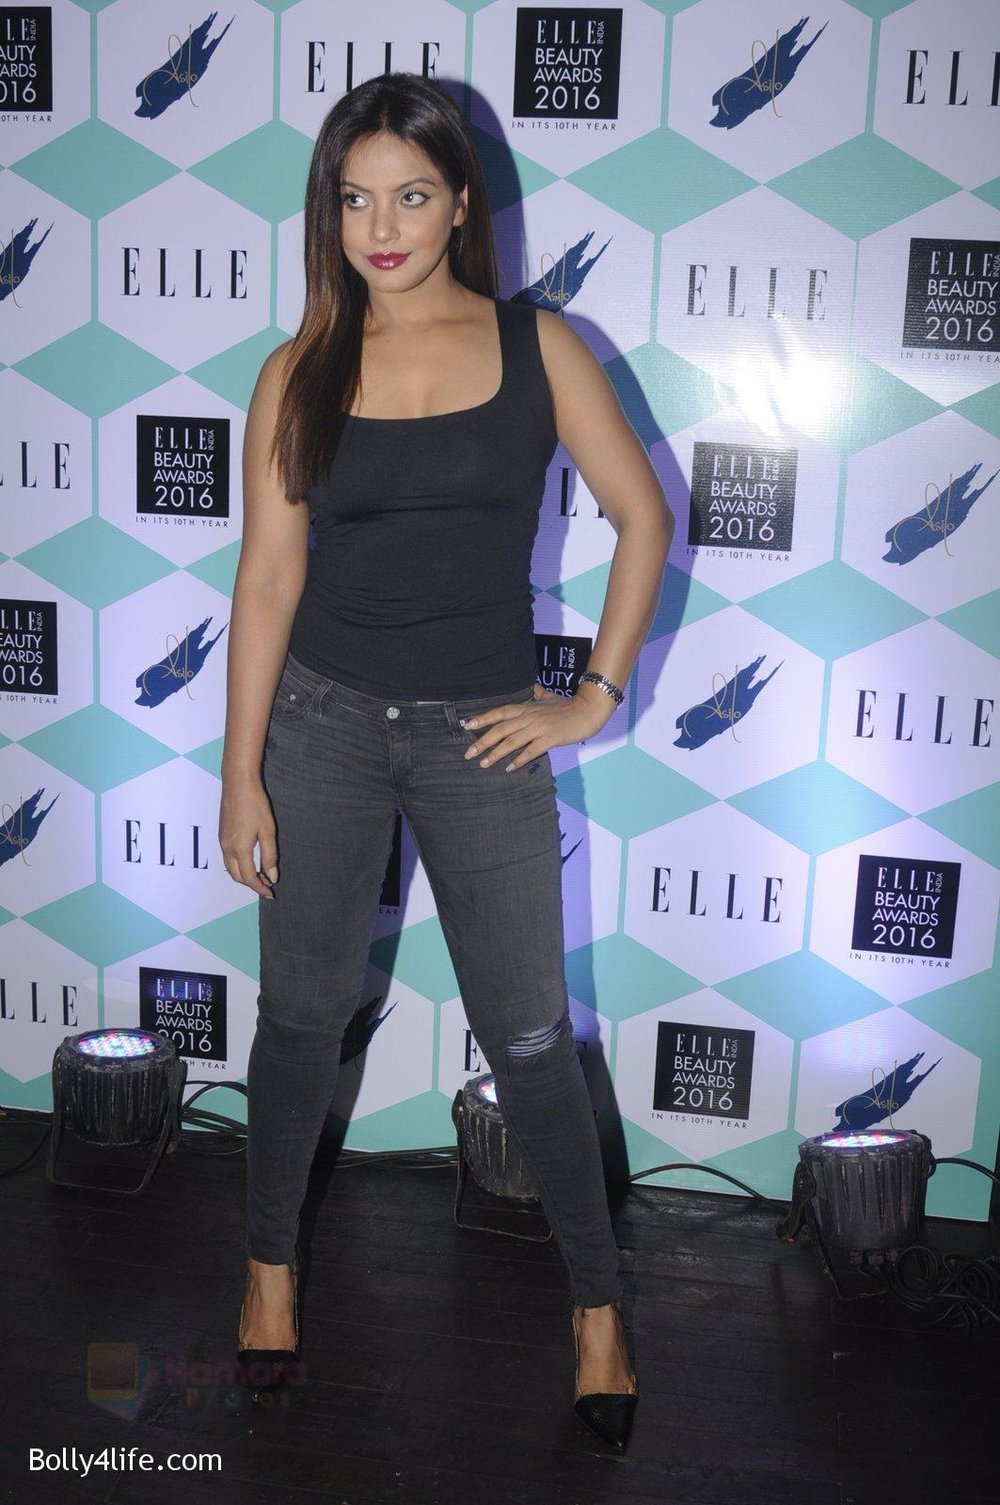 Neetu-Chandra-at-Elle-Beauty-Awards-on-5th-Oct-2016-34.jpg